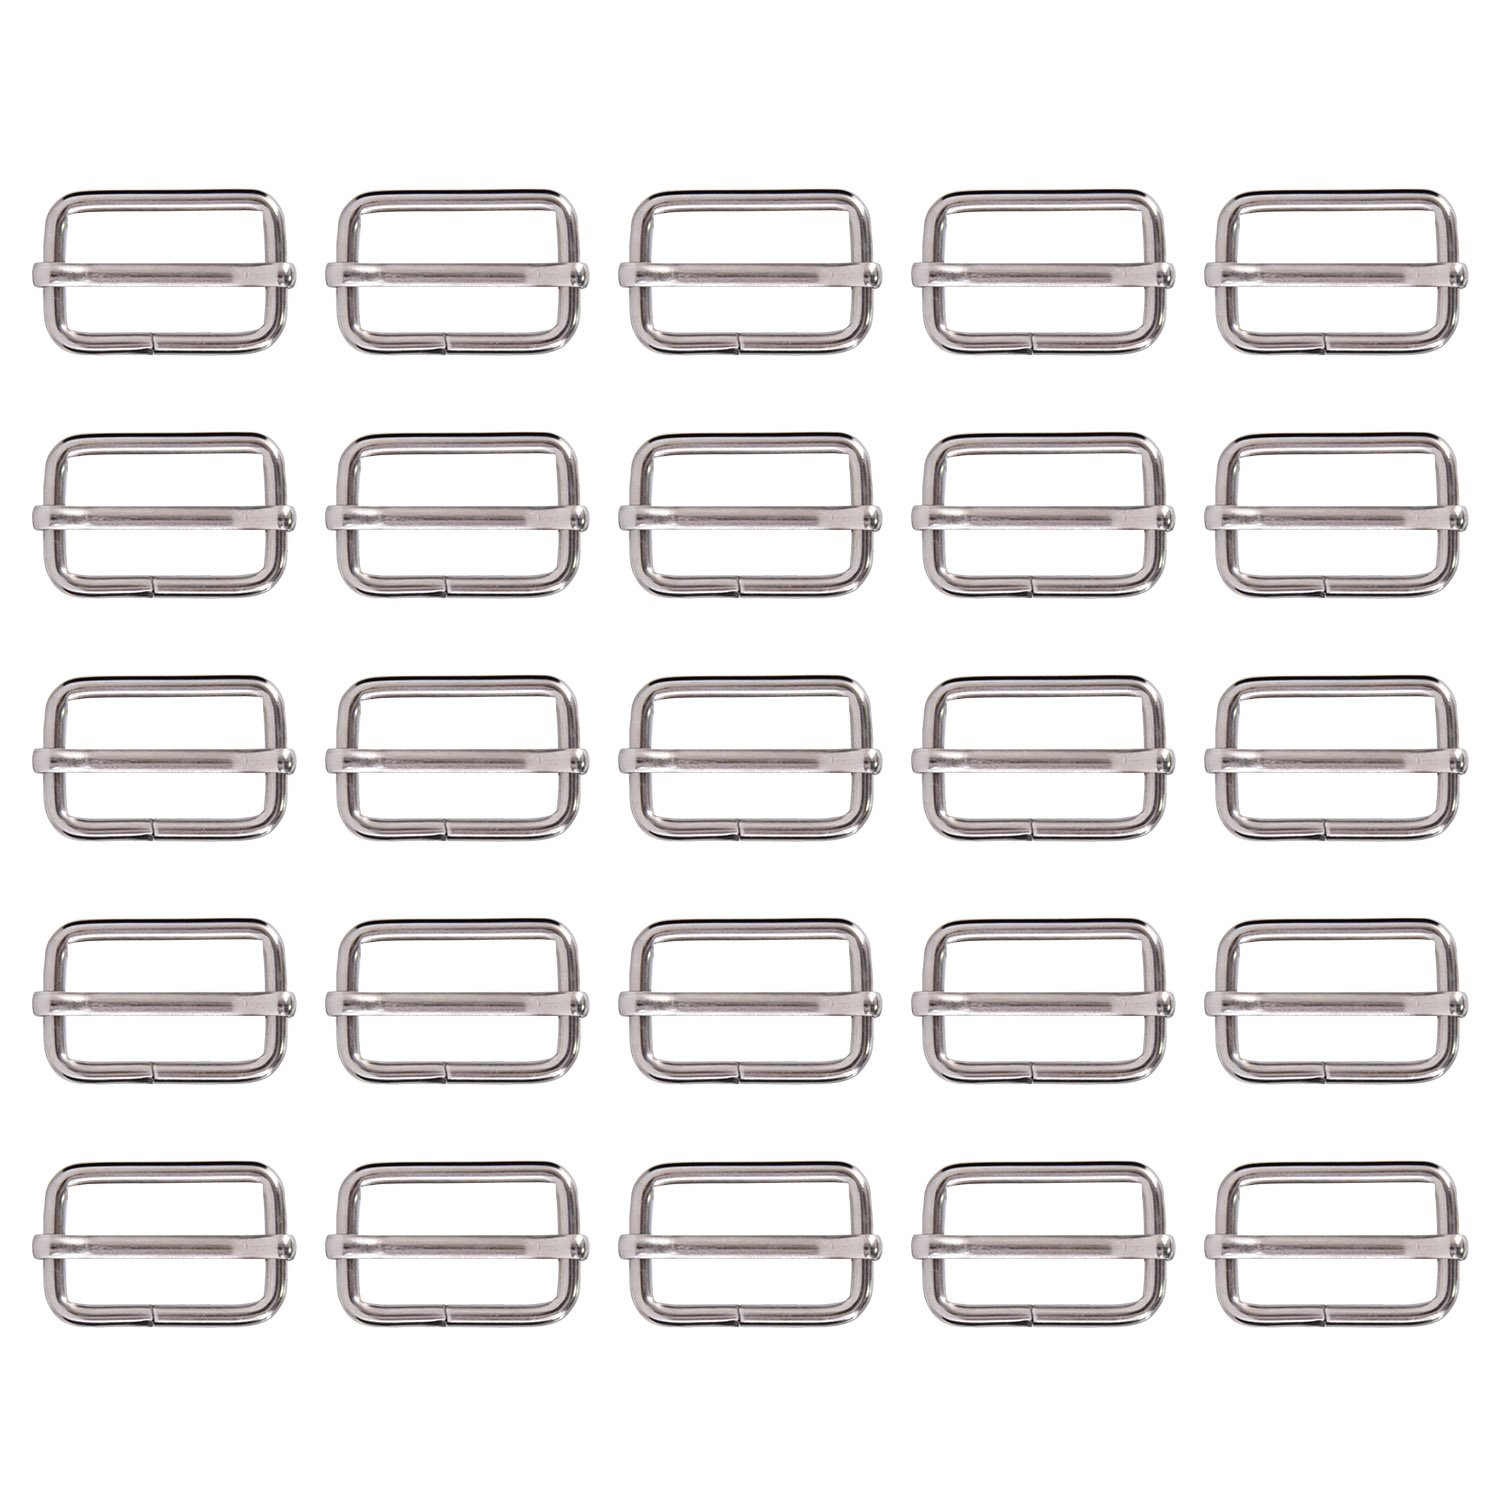 25 Pieces 1 Inch Slide Buckle Triglide Slides Webbing Slider for Fasteners Strap Backpack, Silvery Shappy 4337001032